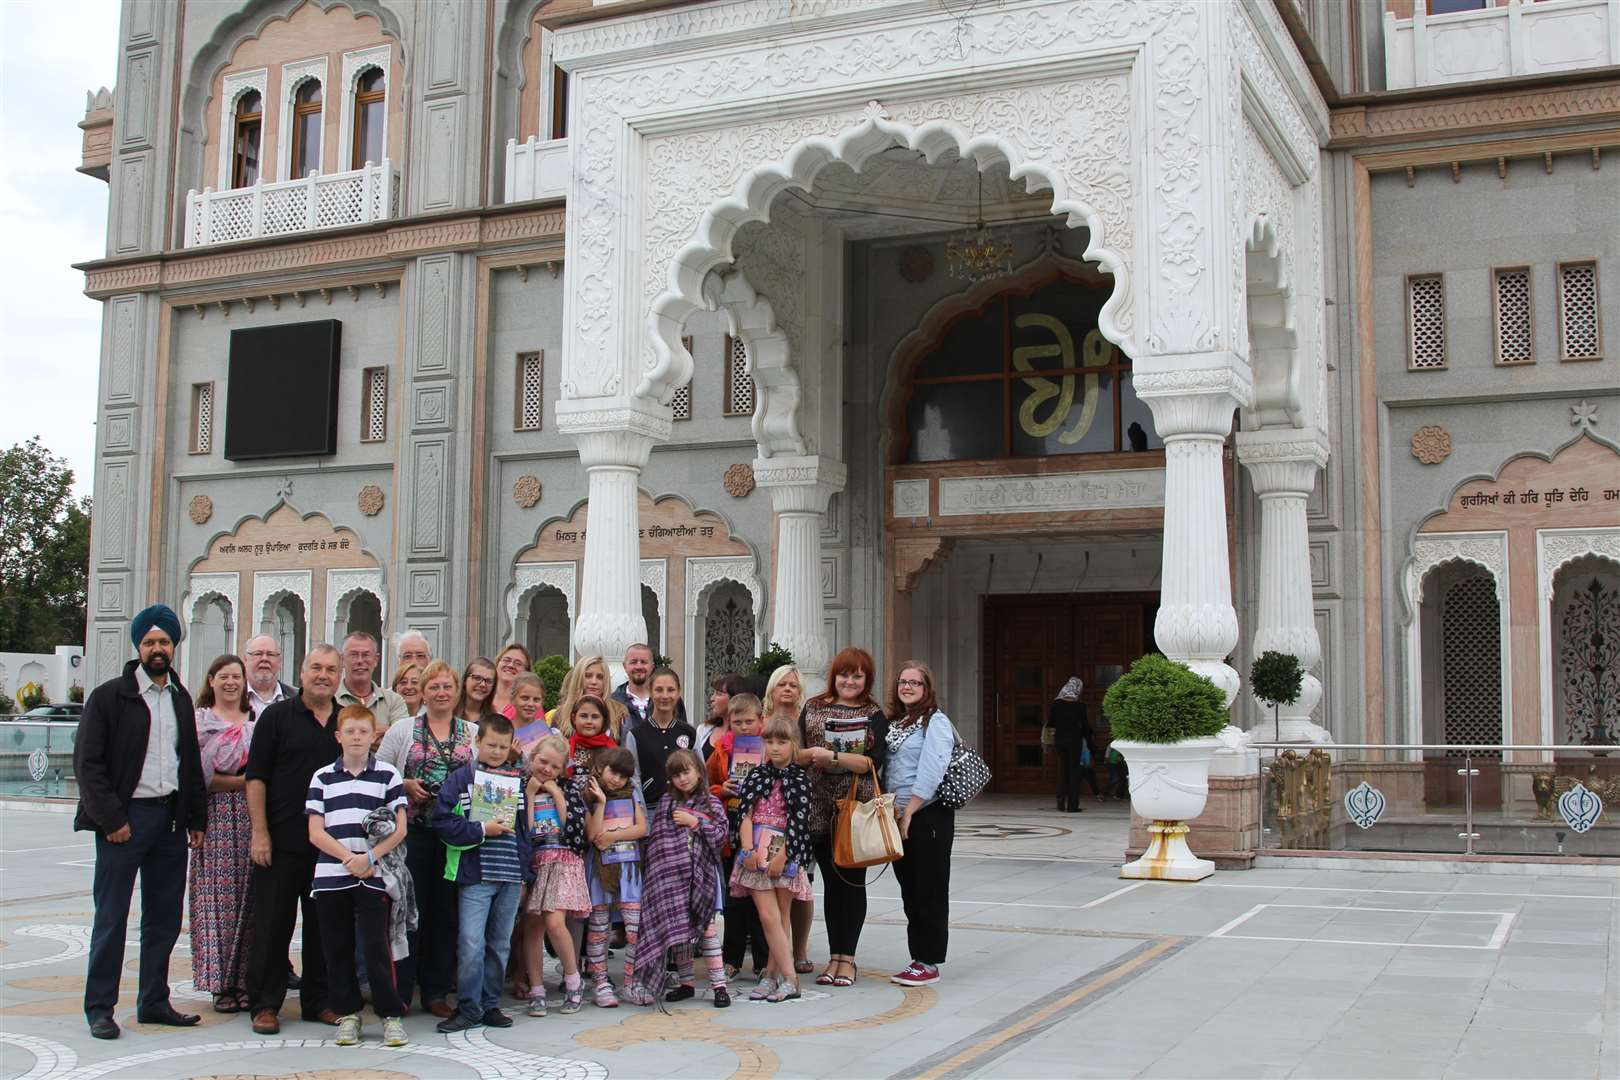 A group of children from Chernobyl have come on holiday thanks to host families in Gravesend.